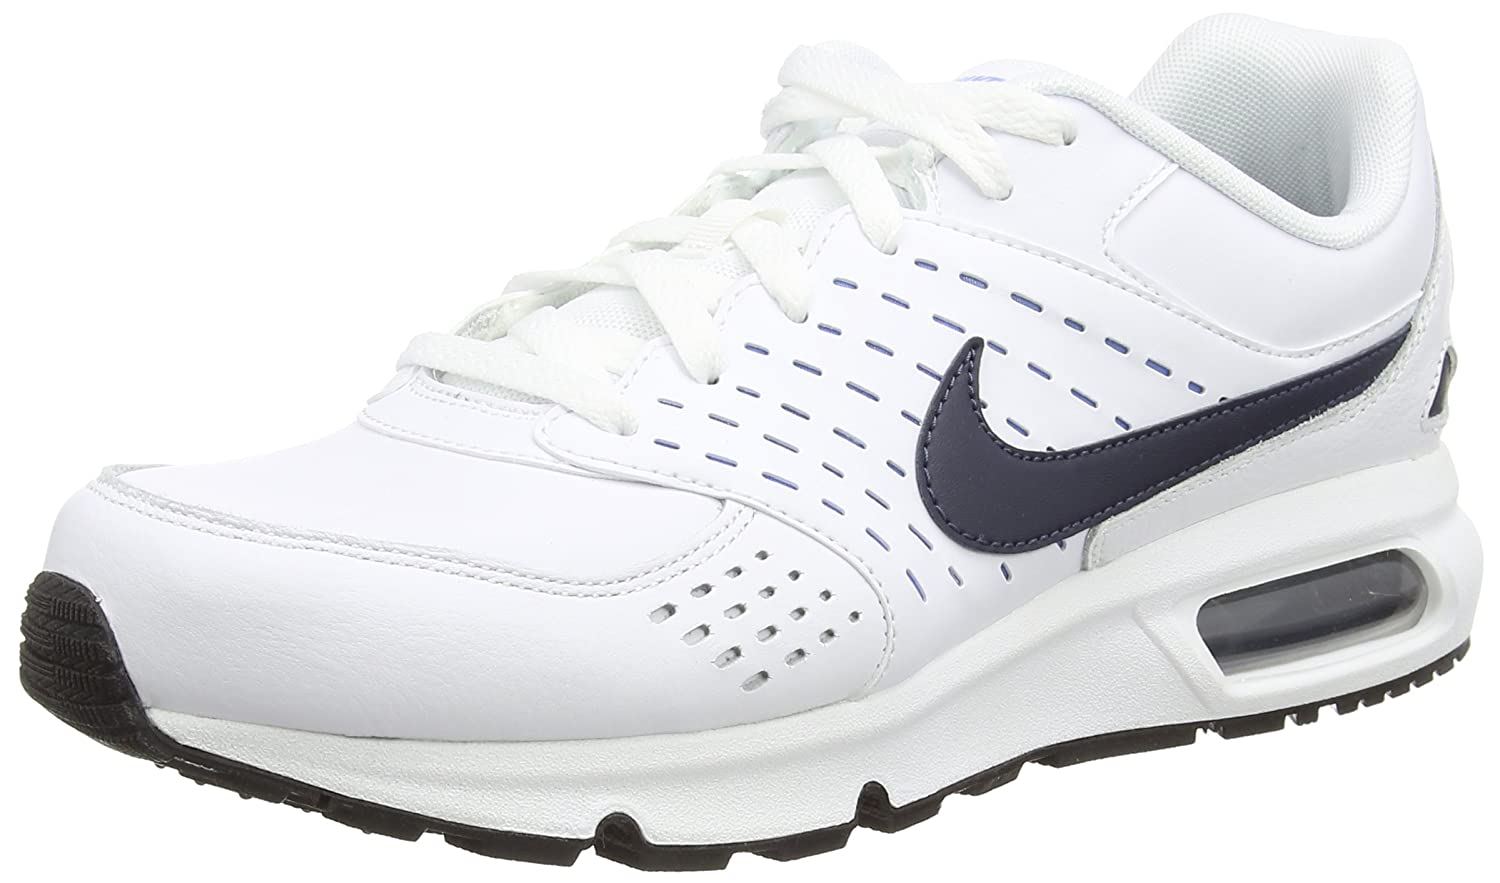 dkjca Nike Air Max Solace Leather